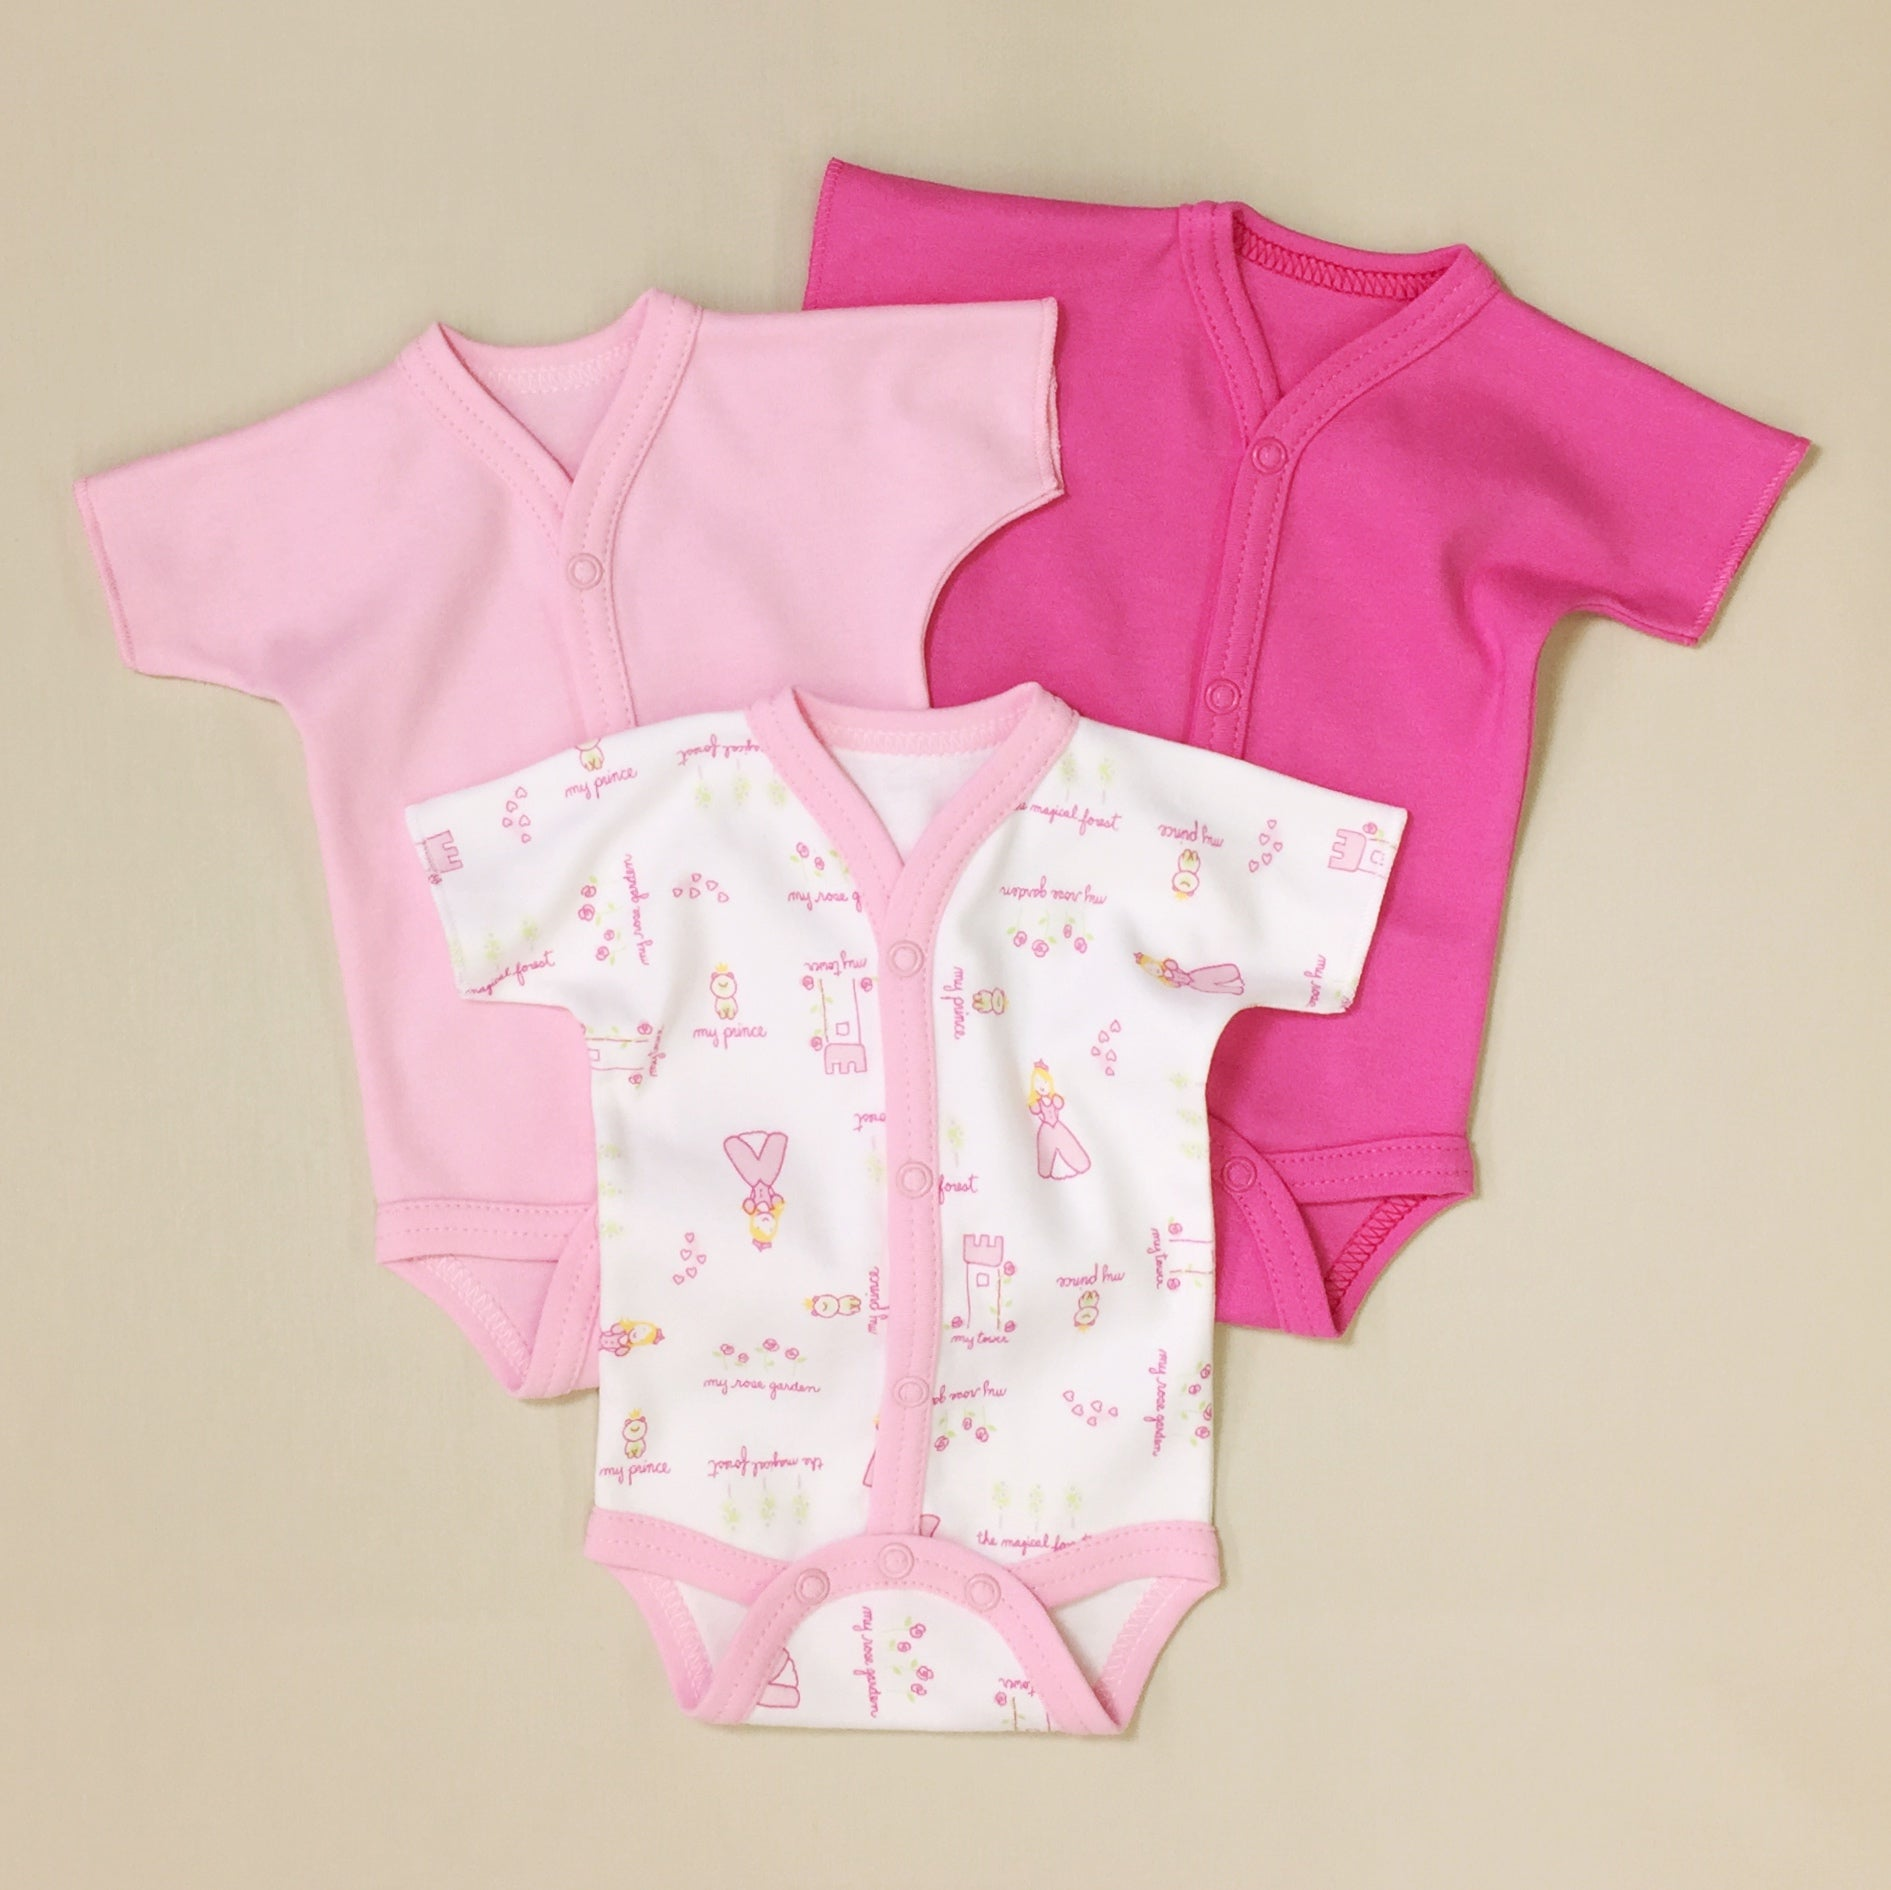 3 Pack Baby Bodysuit, One Light Pink, One Dark Pink And One White With Princess Print